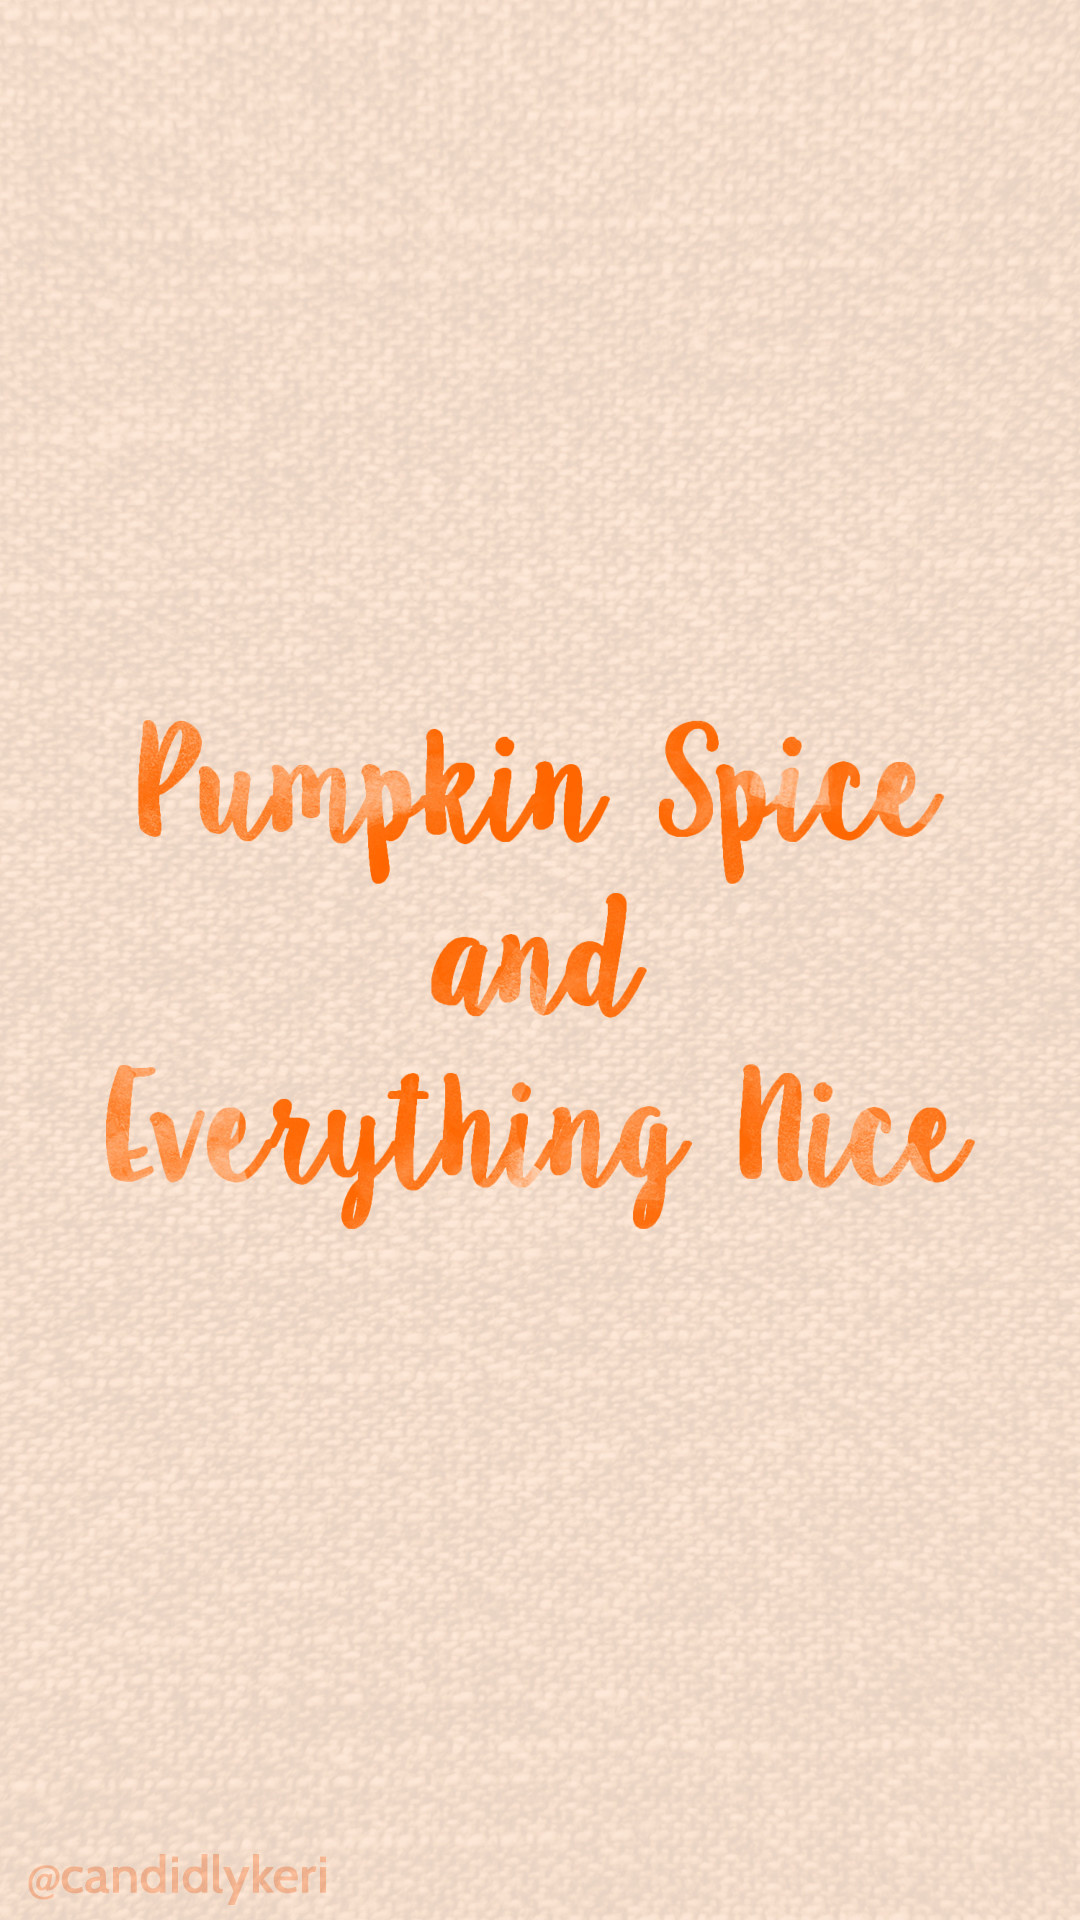 Pumpkin Spice and Everything nice canvas background cute orange watercolor  2016 wallpaper you can download for